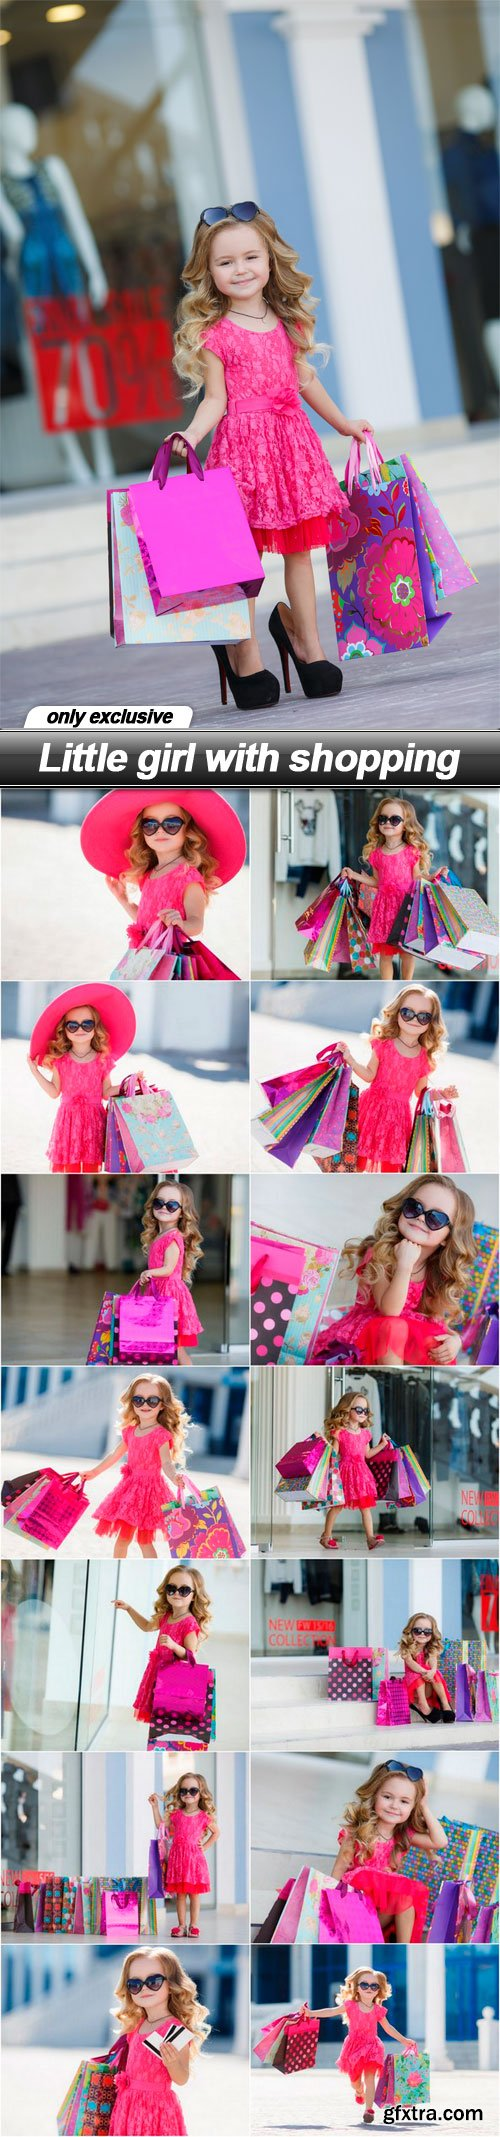 Little girl with shopping - 15 UHQ JPEG